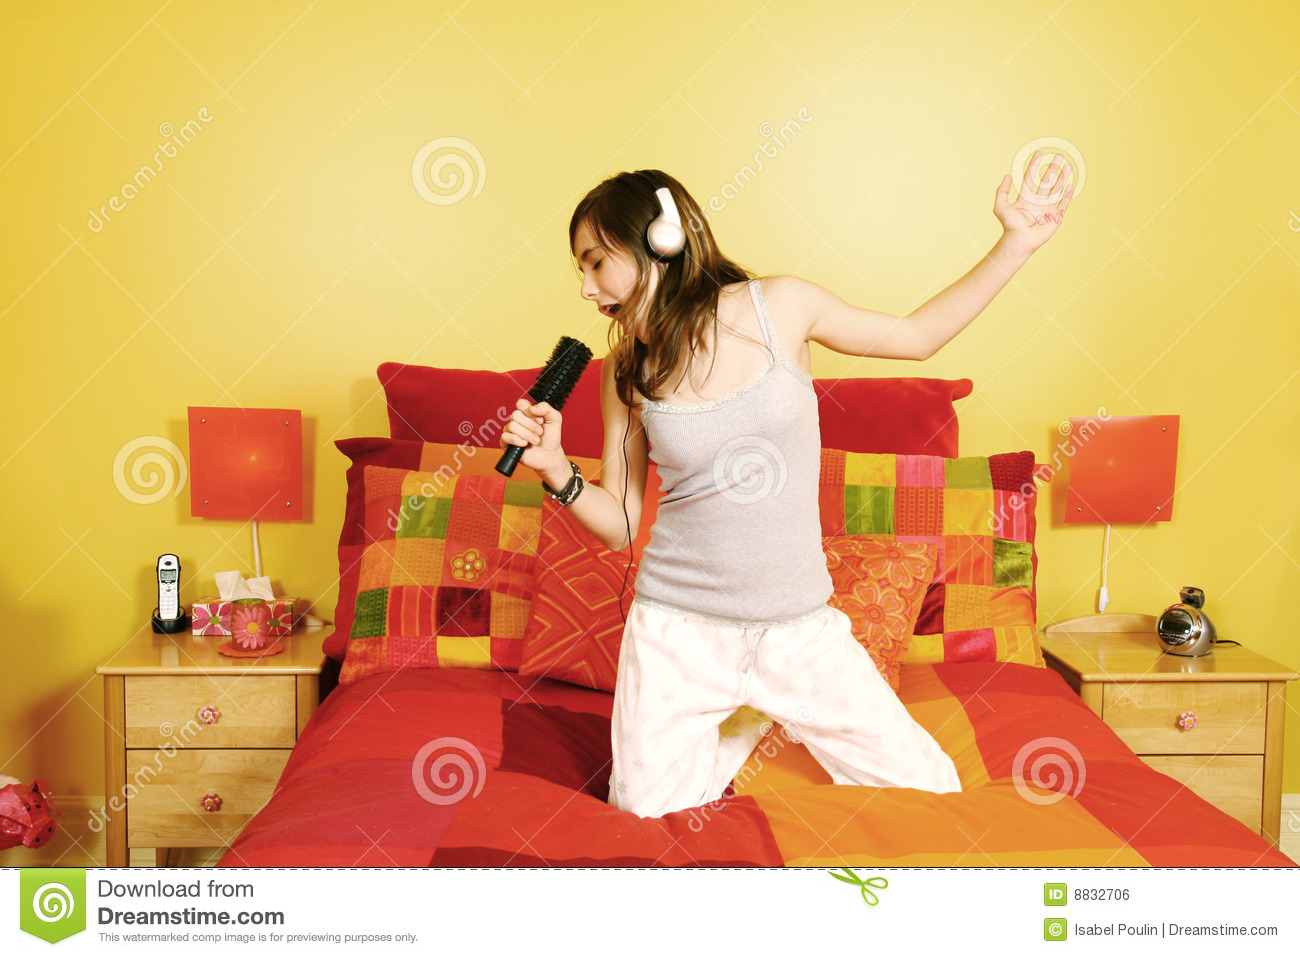 How To Be More Confident In Bed Teen Girl Singing In Bedroom Stock Photo Image 8832706